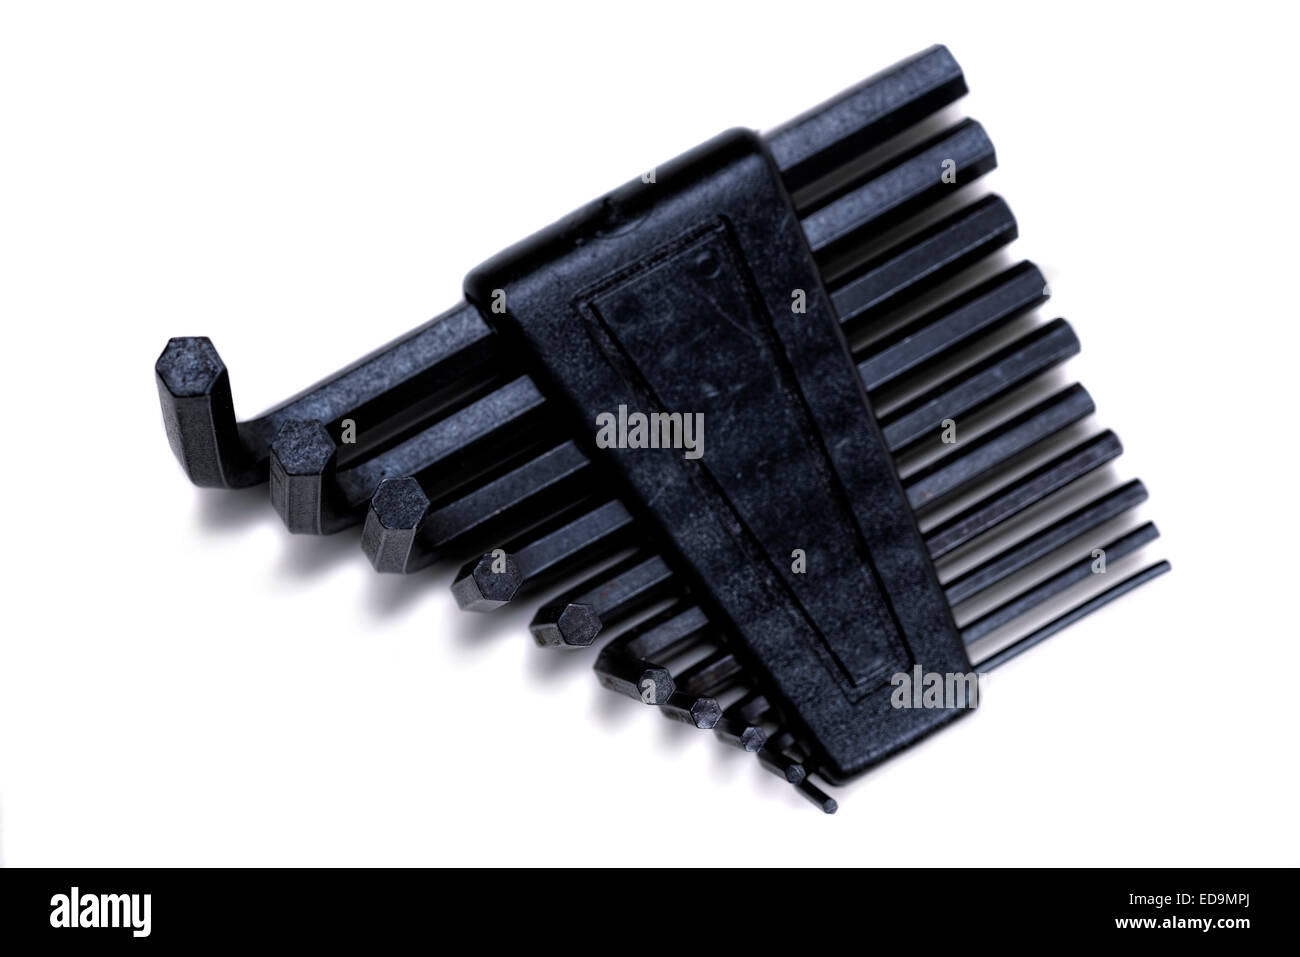 Hex wrench key set in holder. Ends turned towards viewer. - Stock Image